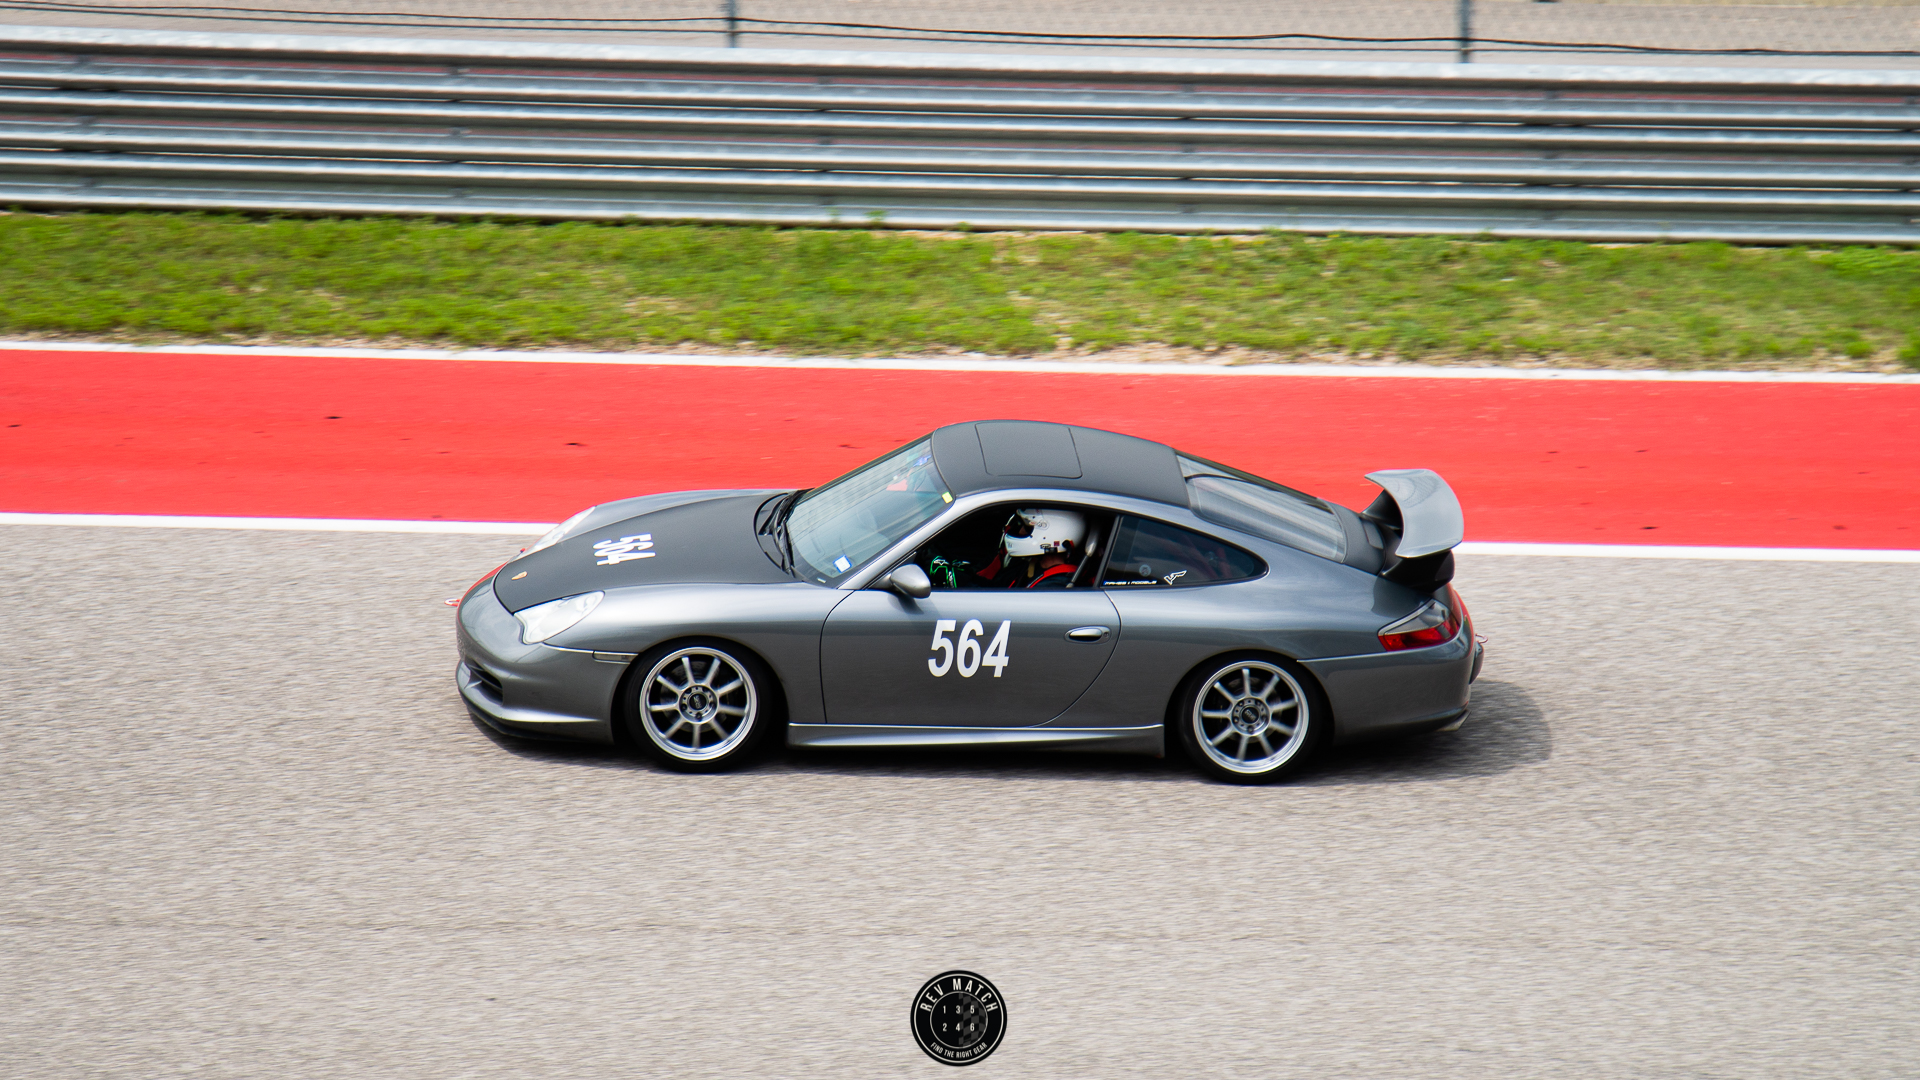 Edge Addict COTA May 2019 Rev Match Media-111.jpg